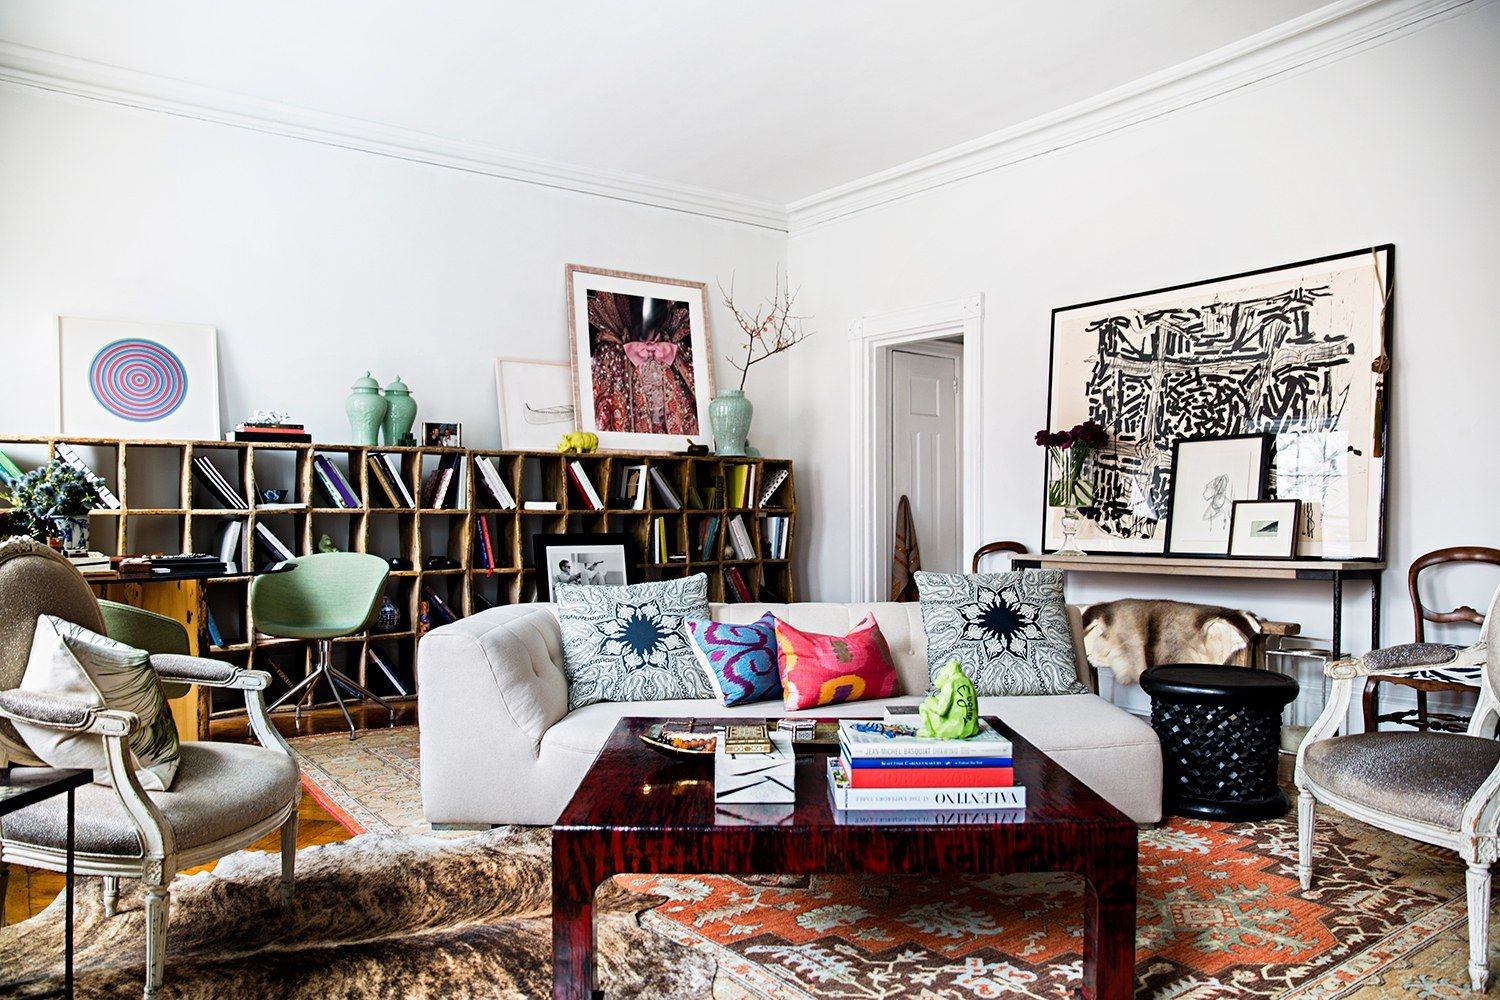 Studio reed jonathan reed s spare crafted interior design - Look Inside Robert Duffy S Historic Manhattan Townhouse Architectural Digest Townhouse And Manhattan